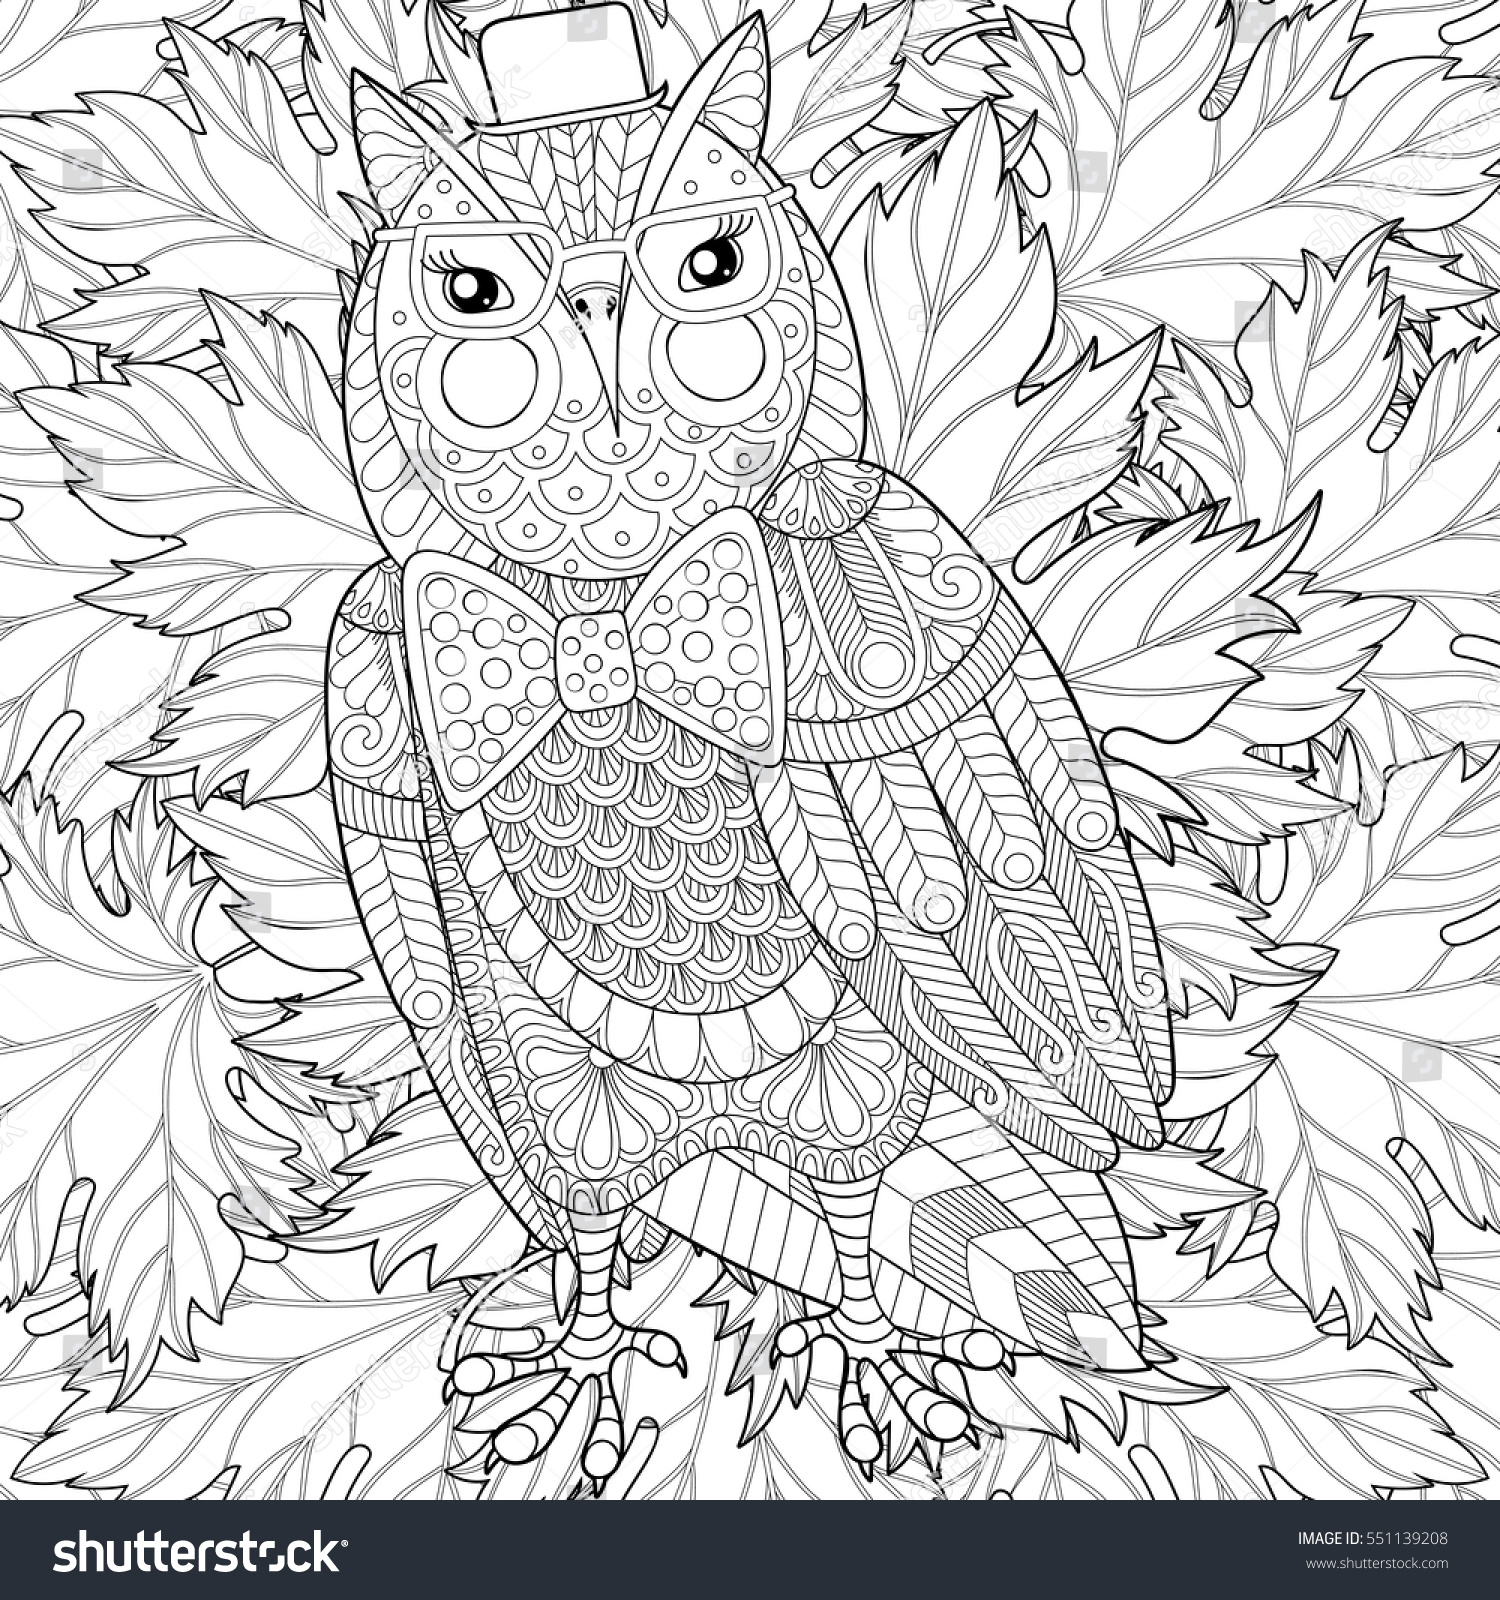 551139208 on Owl Coloring Pages